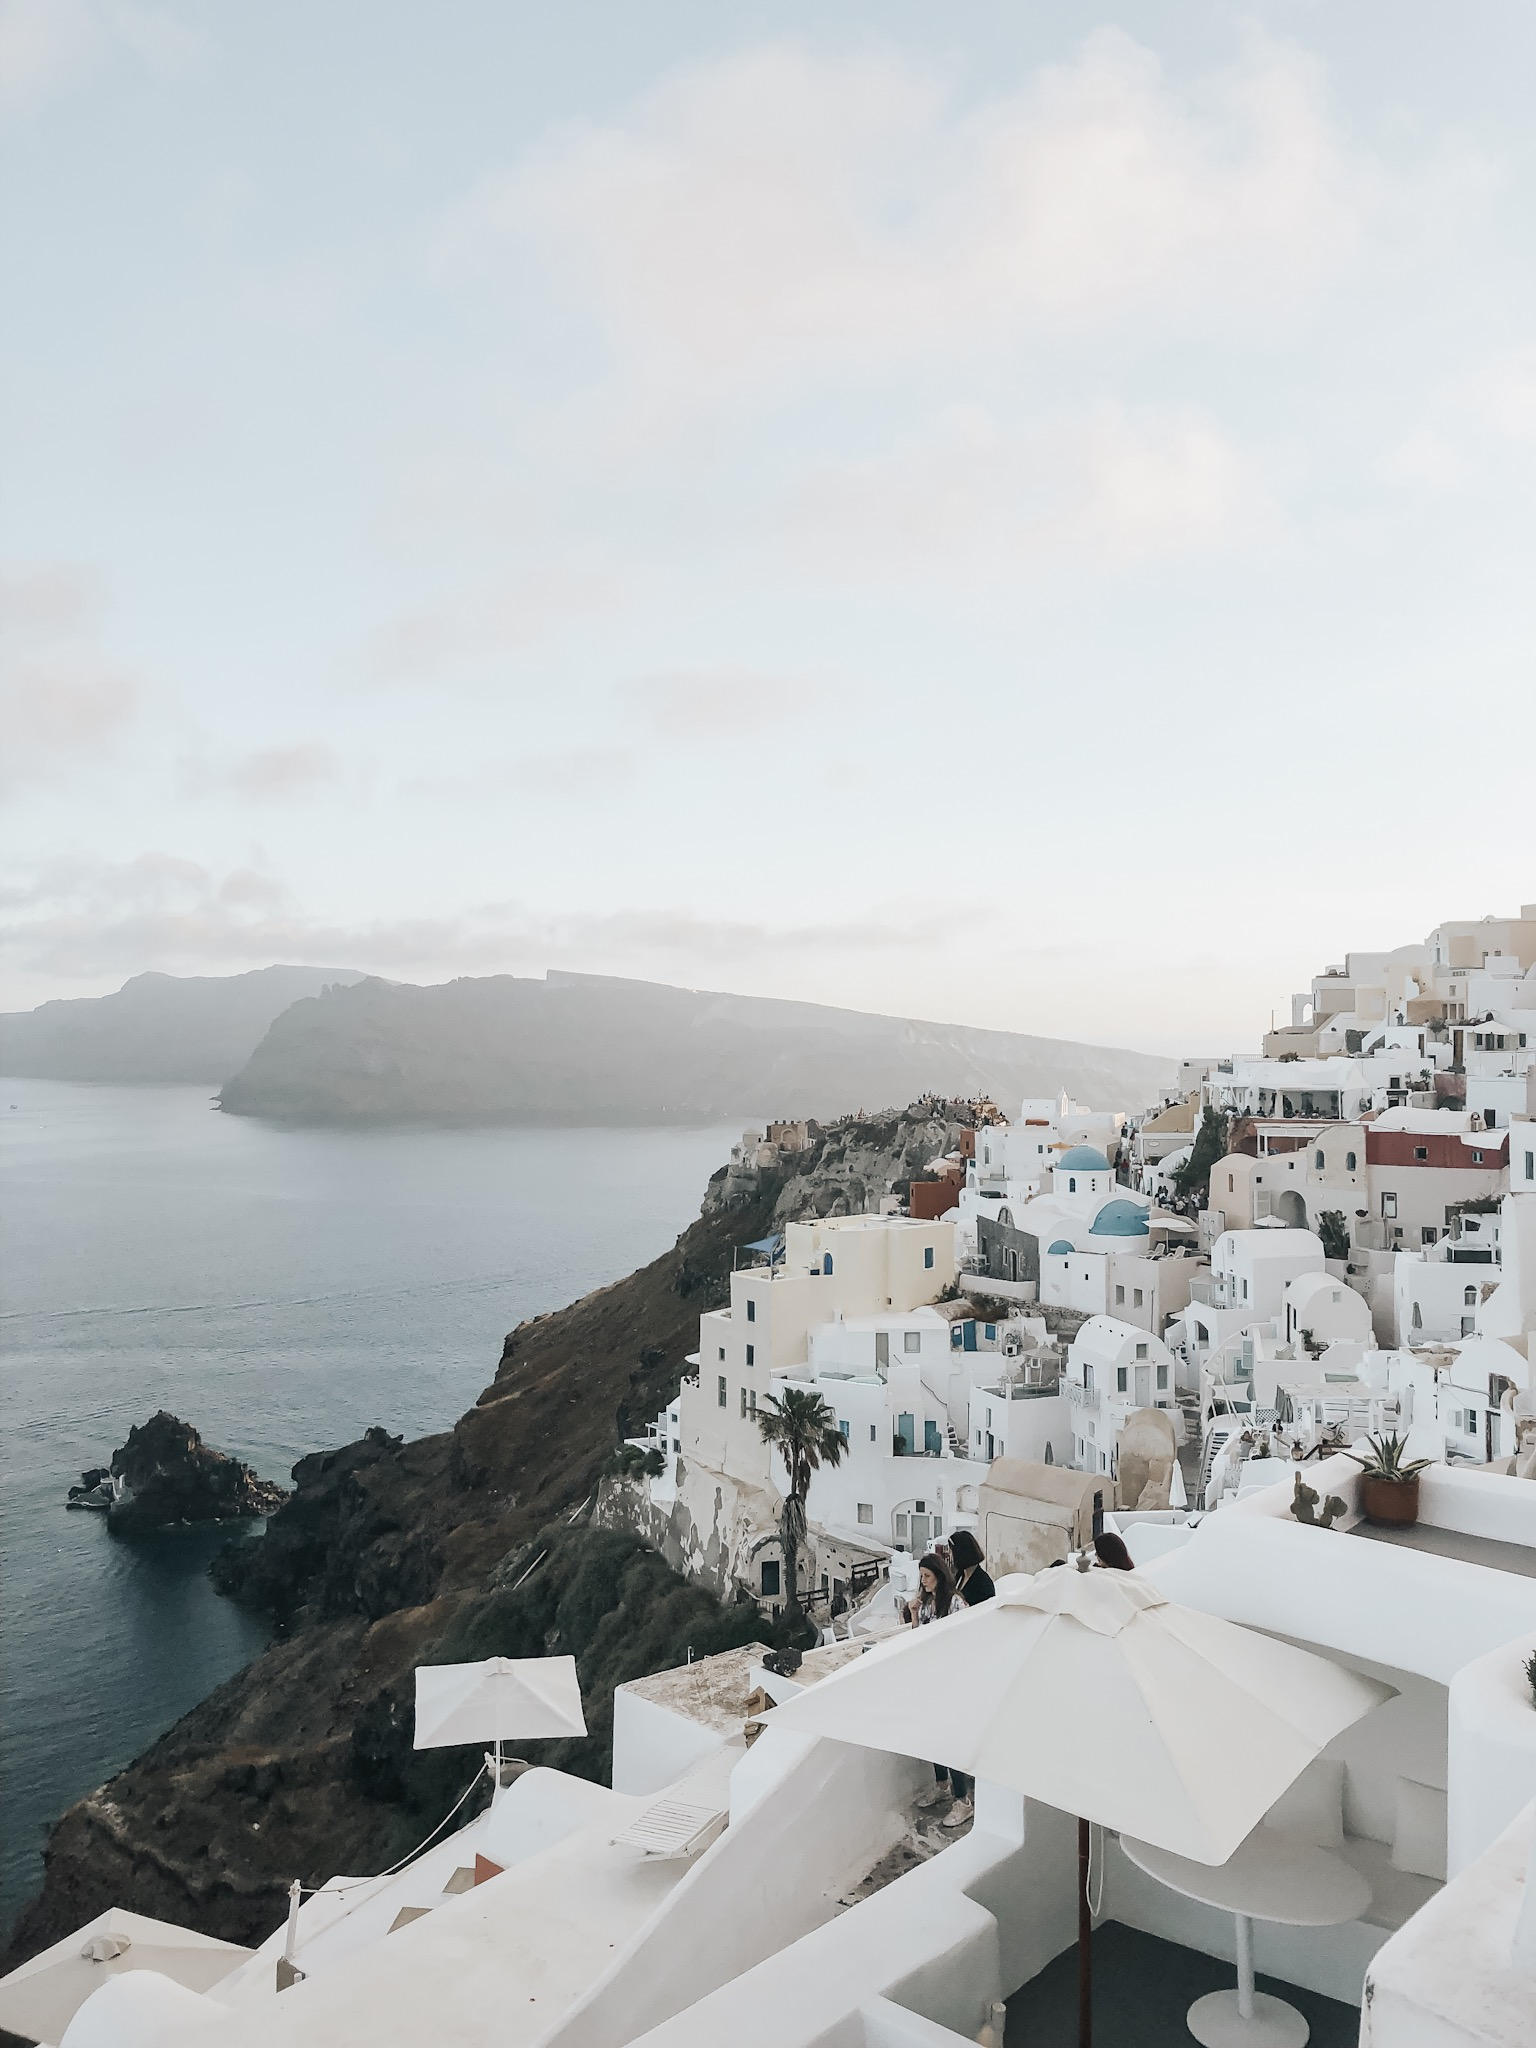 our first night in Oia